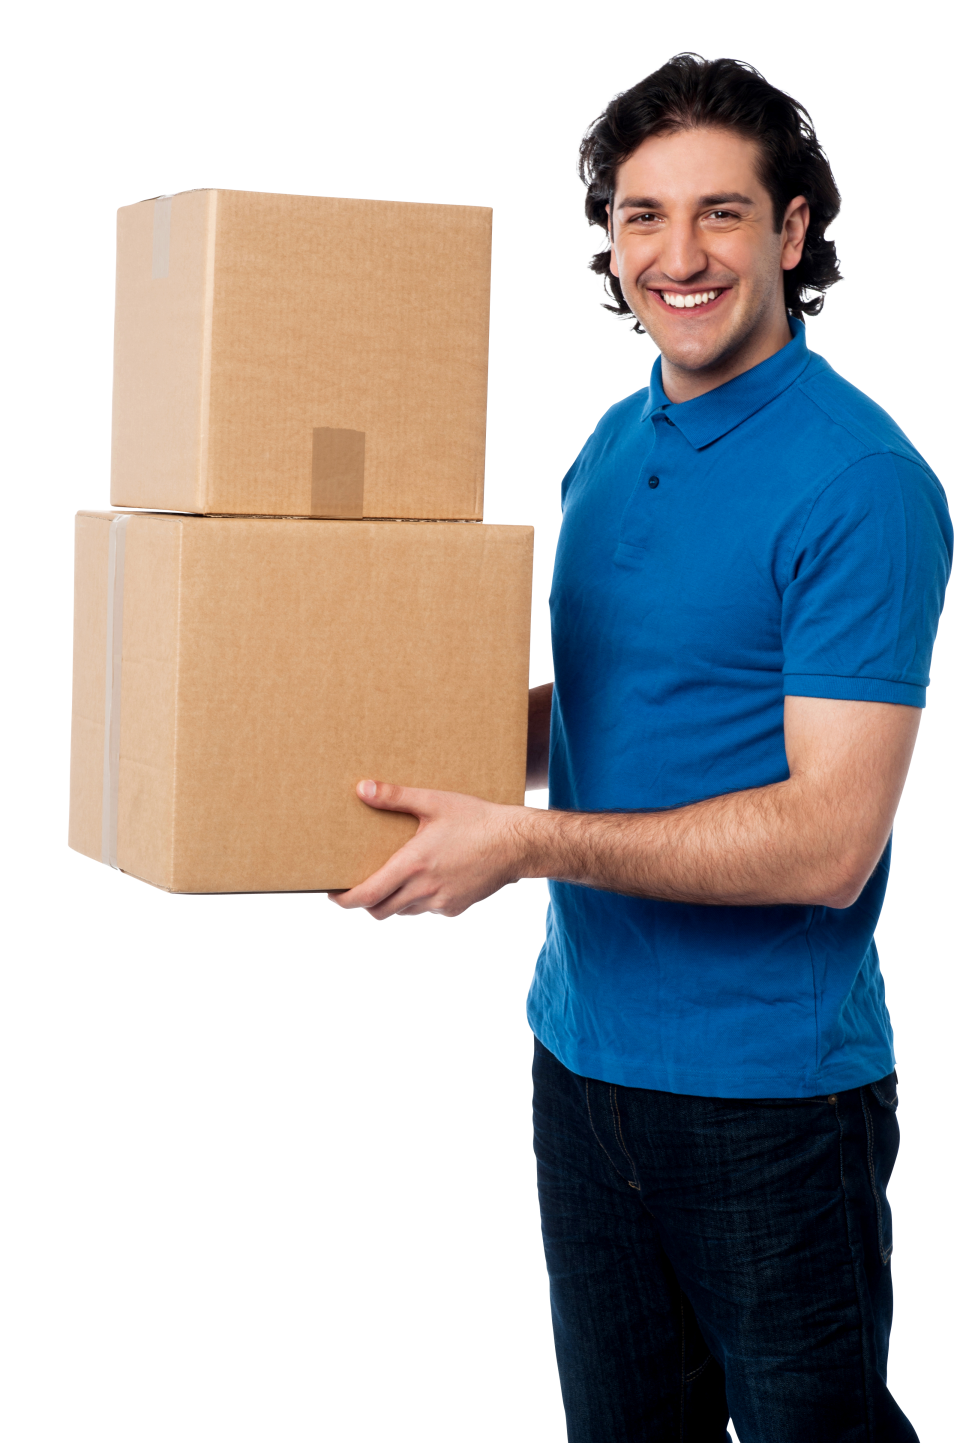 Packing PNG Image